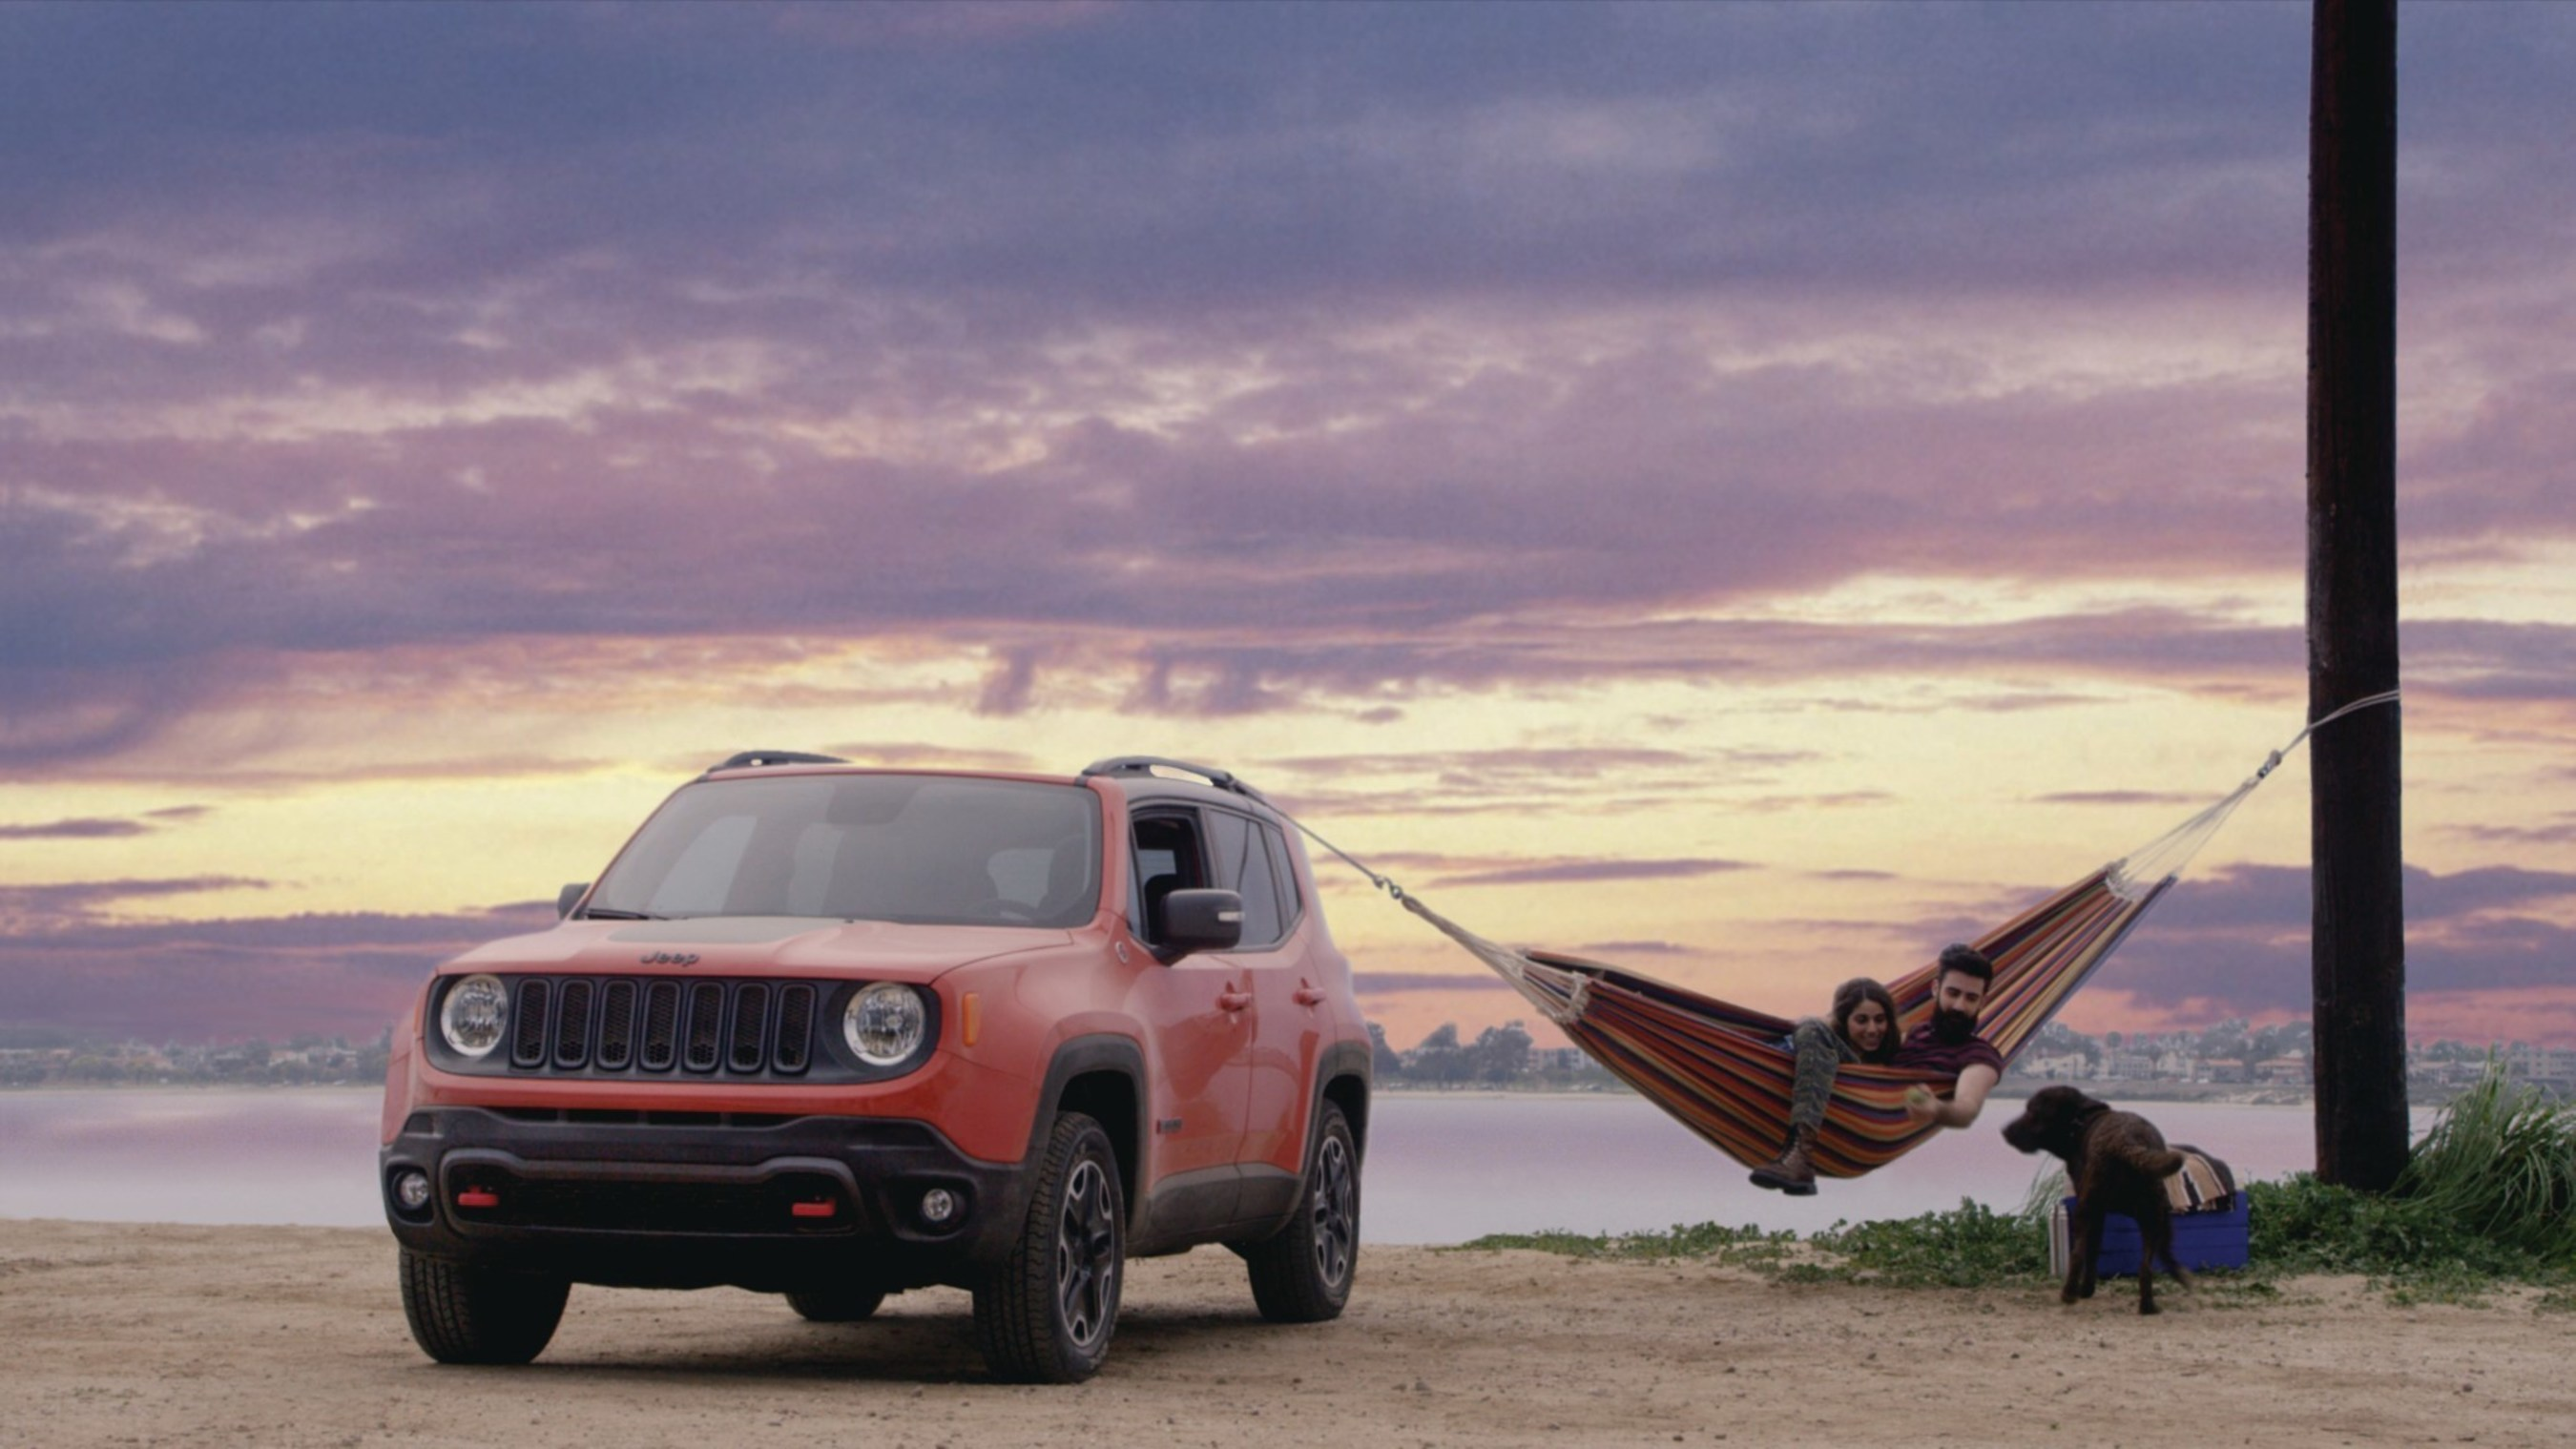 Jeep' Brand Launches Unprecedented Marketing Campaign for All-New 2015 Jeep Renegade through Exclusive Music Platform with KIDinaKORNER/Interscope Records and X Ambassad